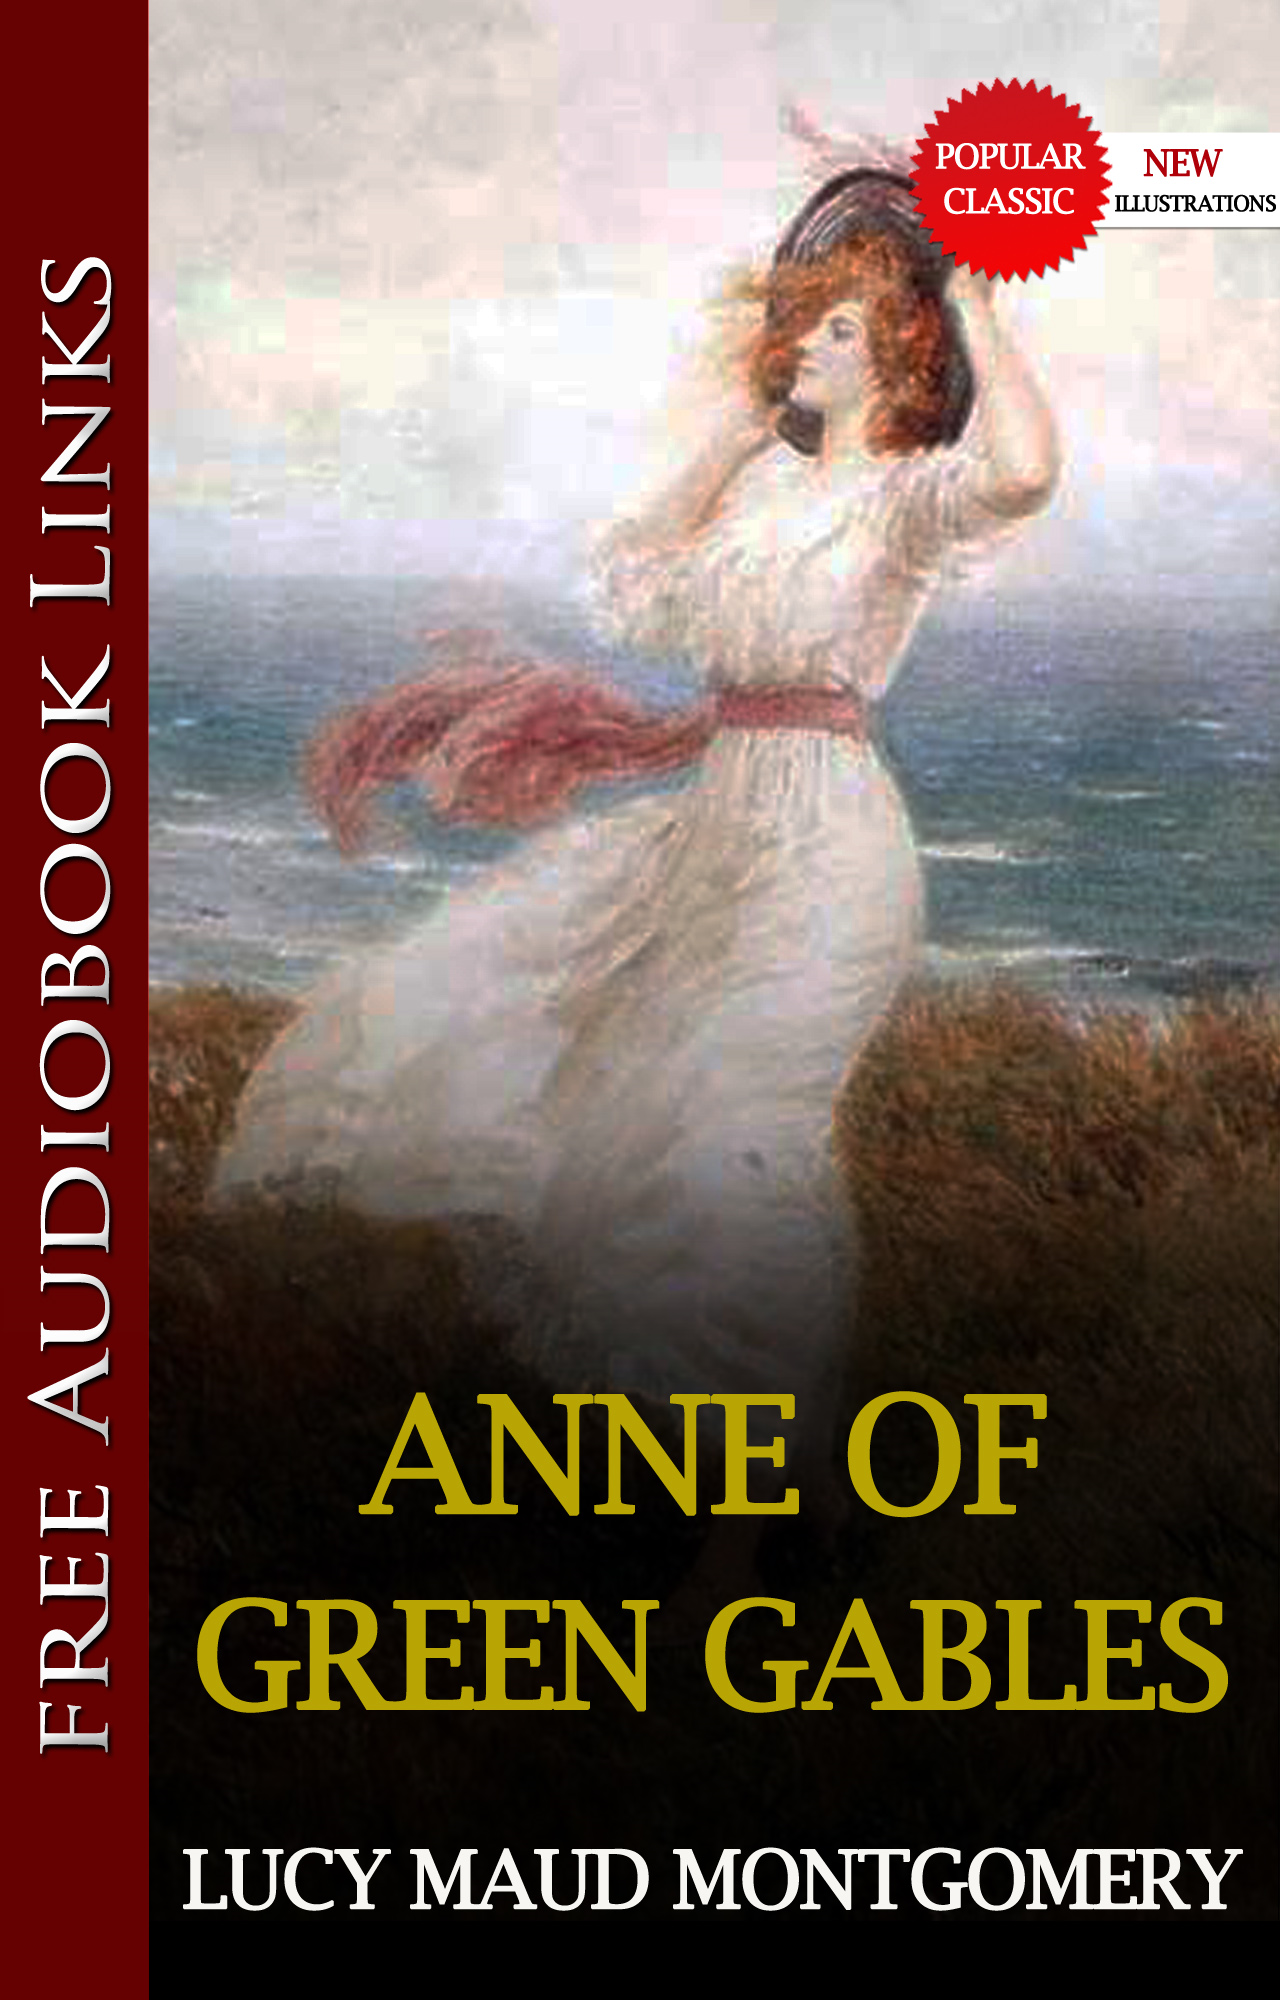 Lucy Maud Montgomery - ANNE OF GREEN GABLES  Popular Classic Literature